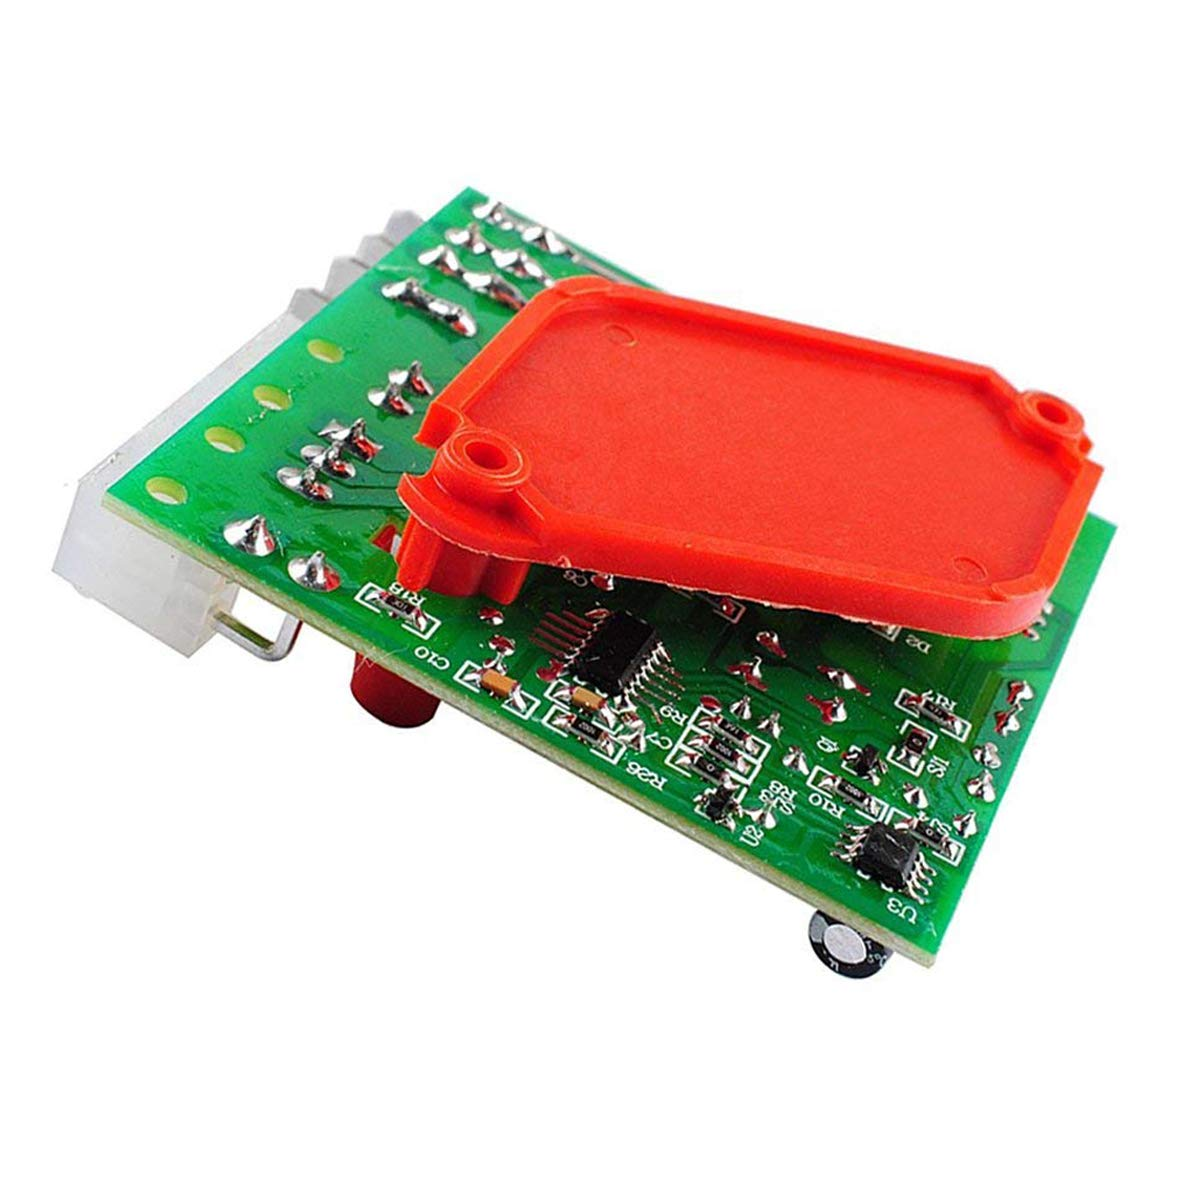 W10366605 Adaptive Defrost Control Board for Whirlpool Referigerator WPW10366605 by Ketofa